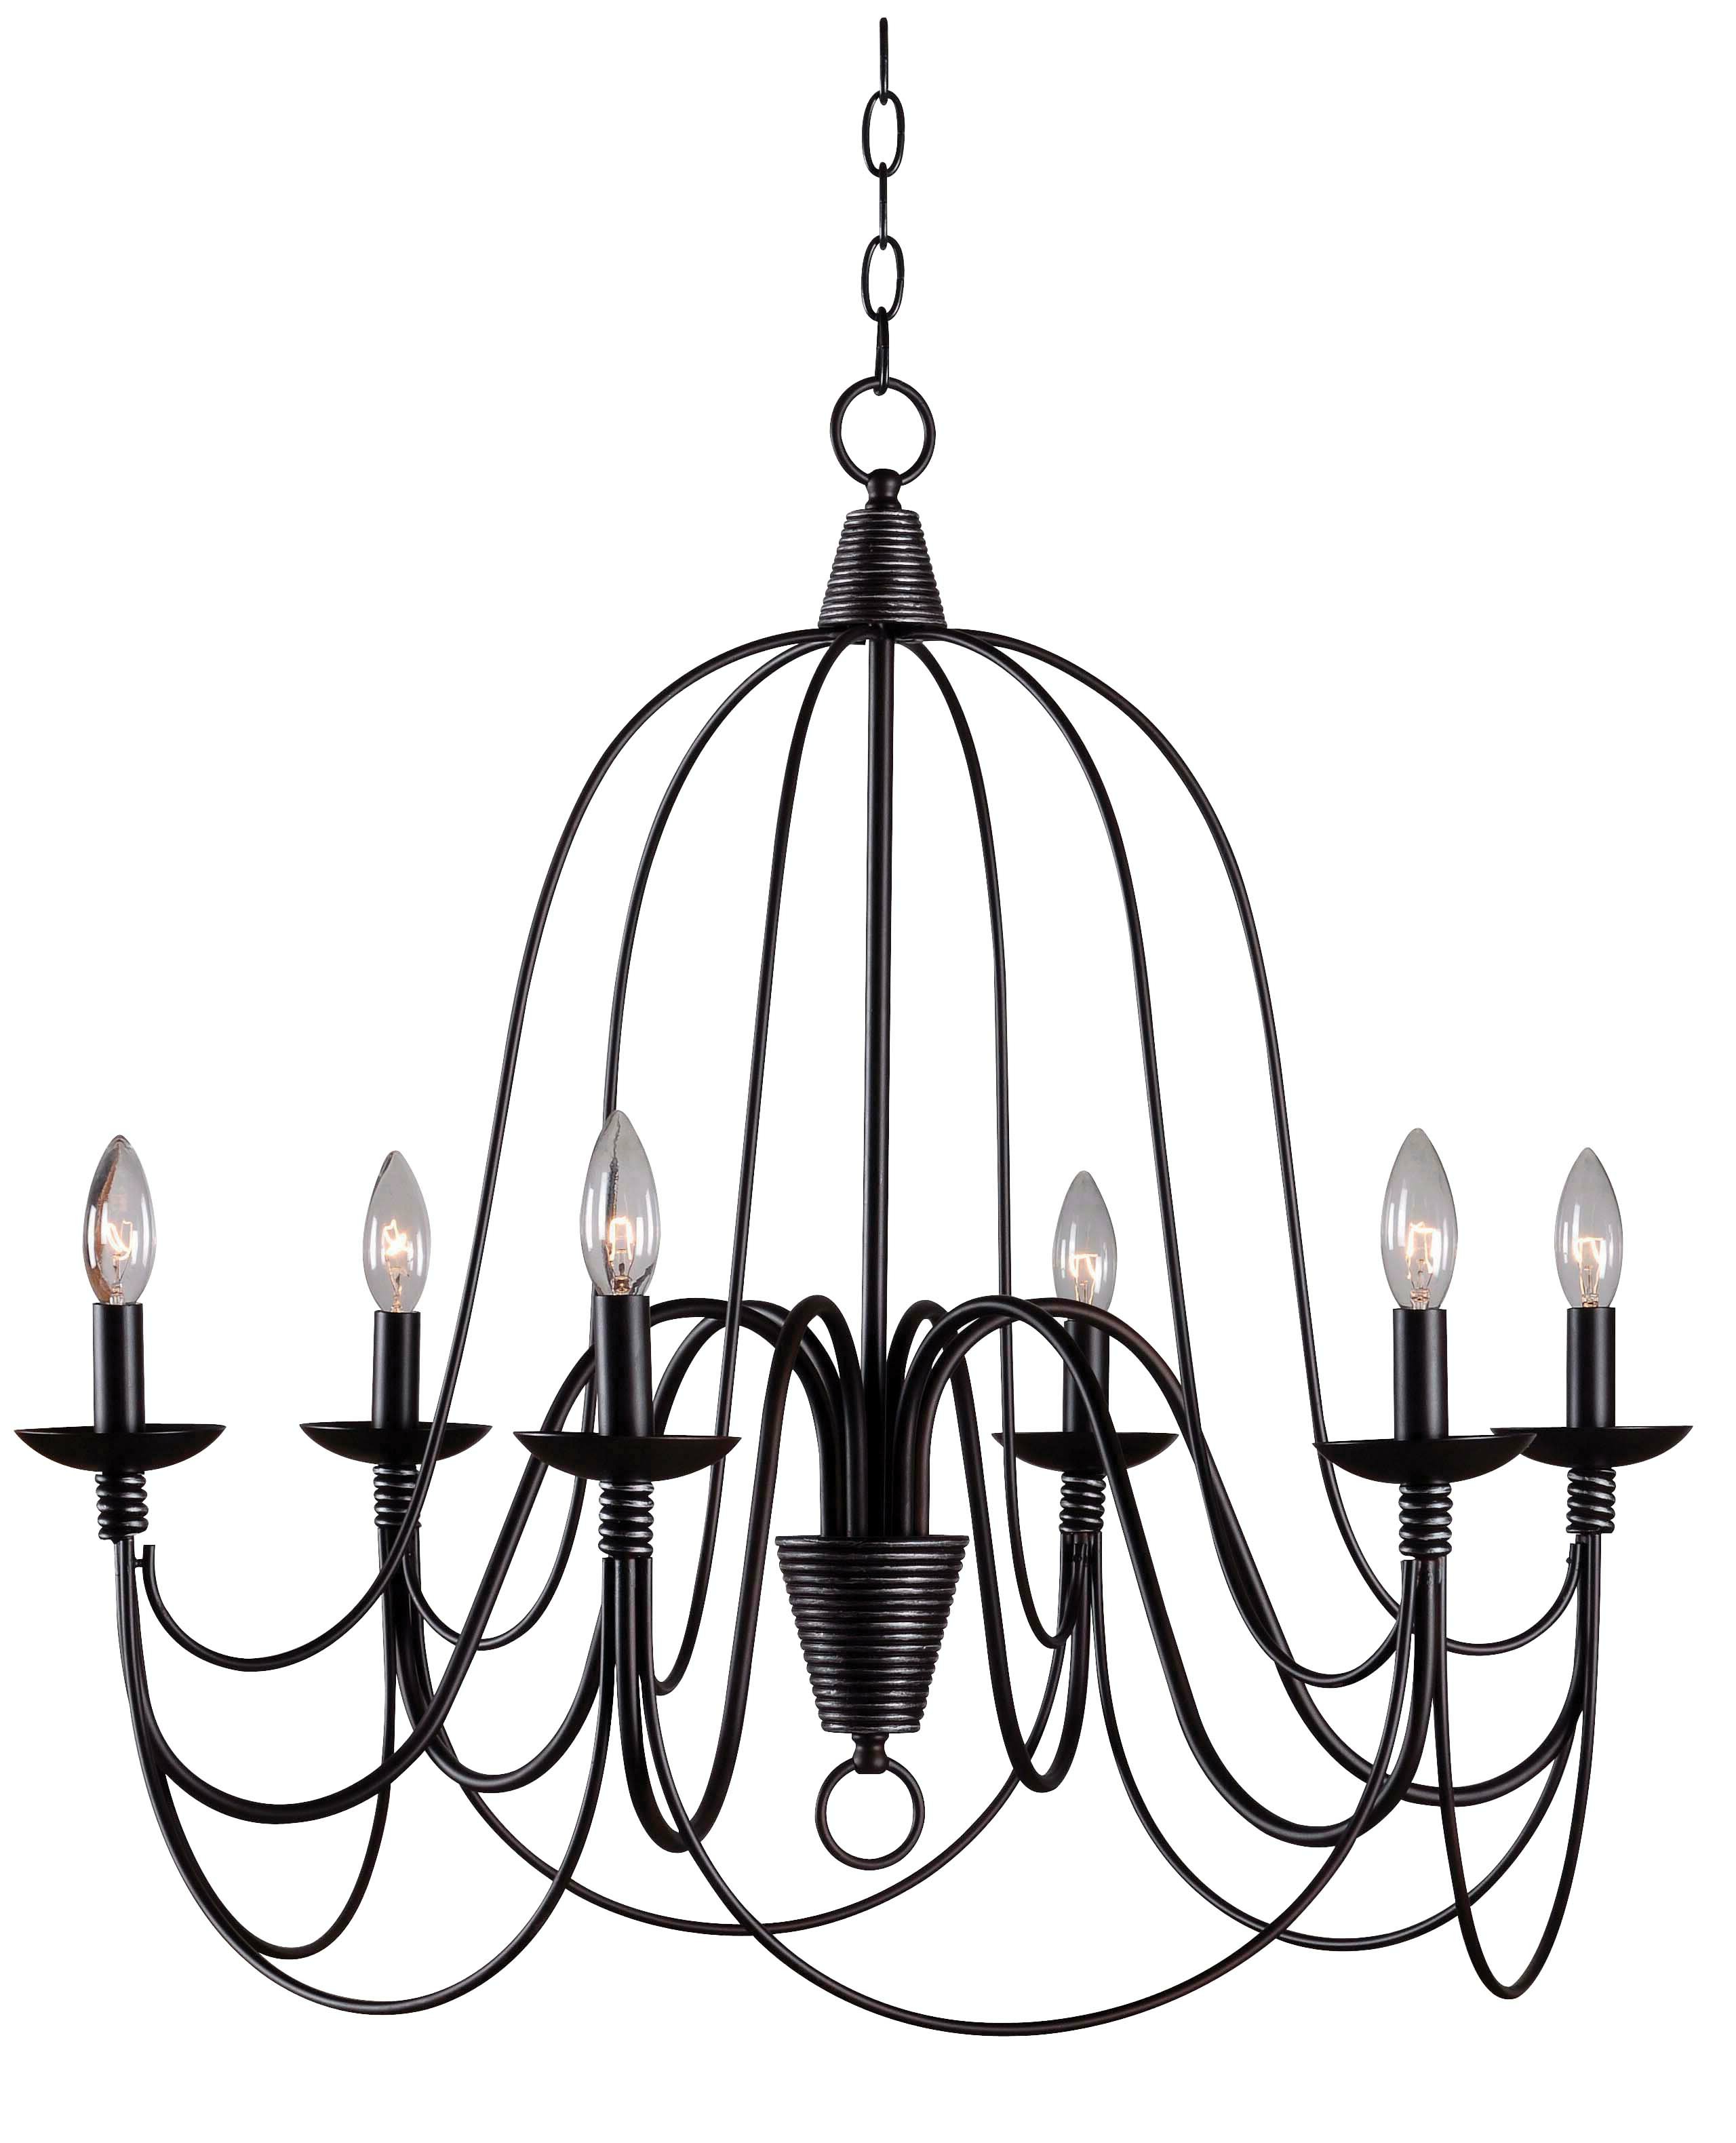 Best And Newest Diaz 6 Light Candle Style Chandeliers Throughout Kollman 6 Light Candle Style Chandelier (View 2 of 25)